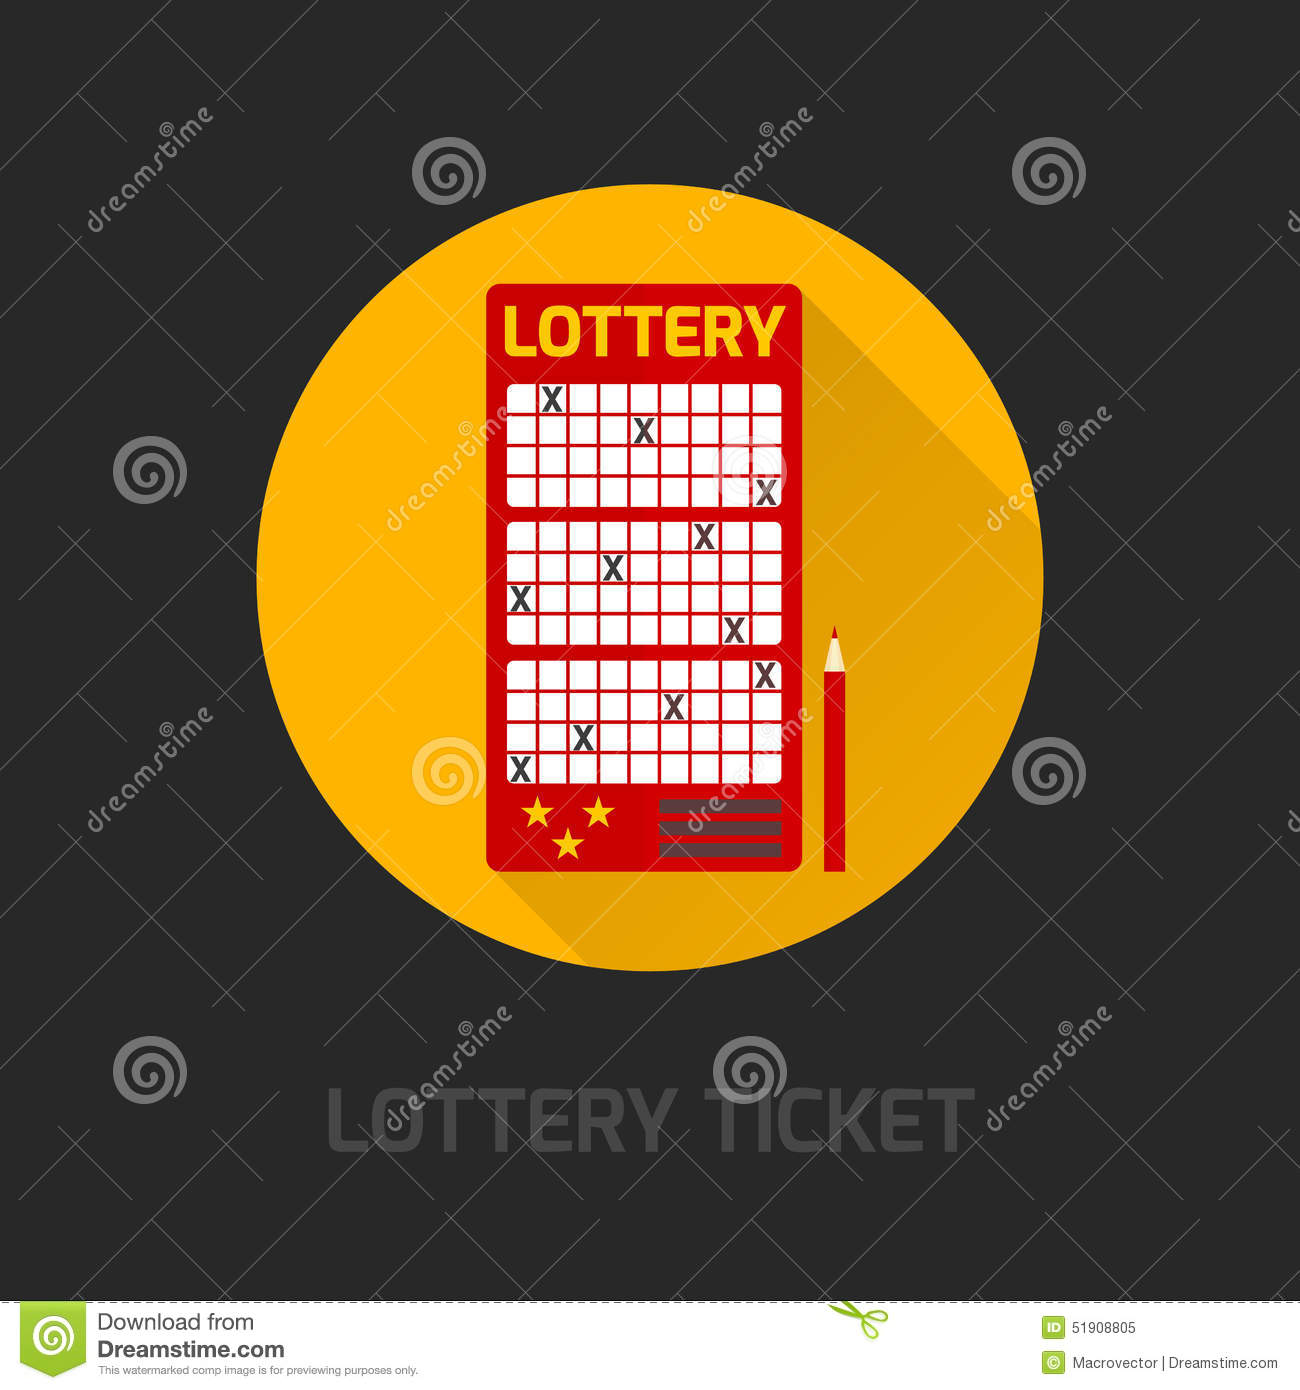 how to find lottery retailer